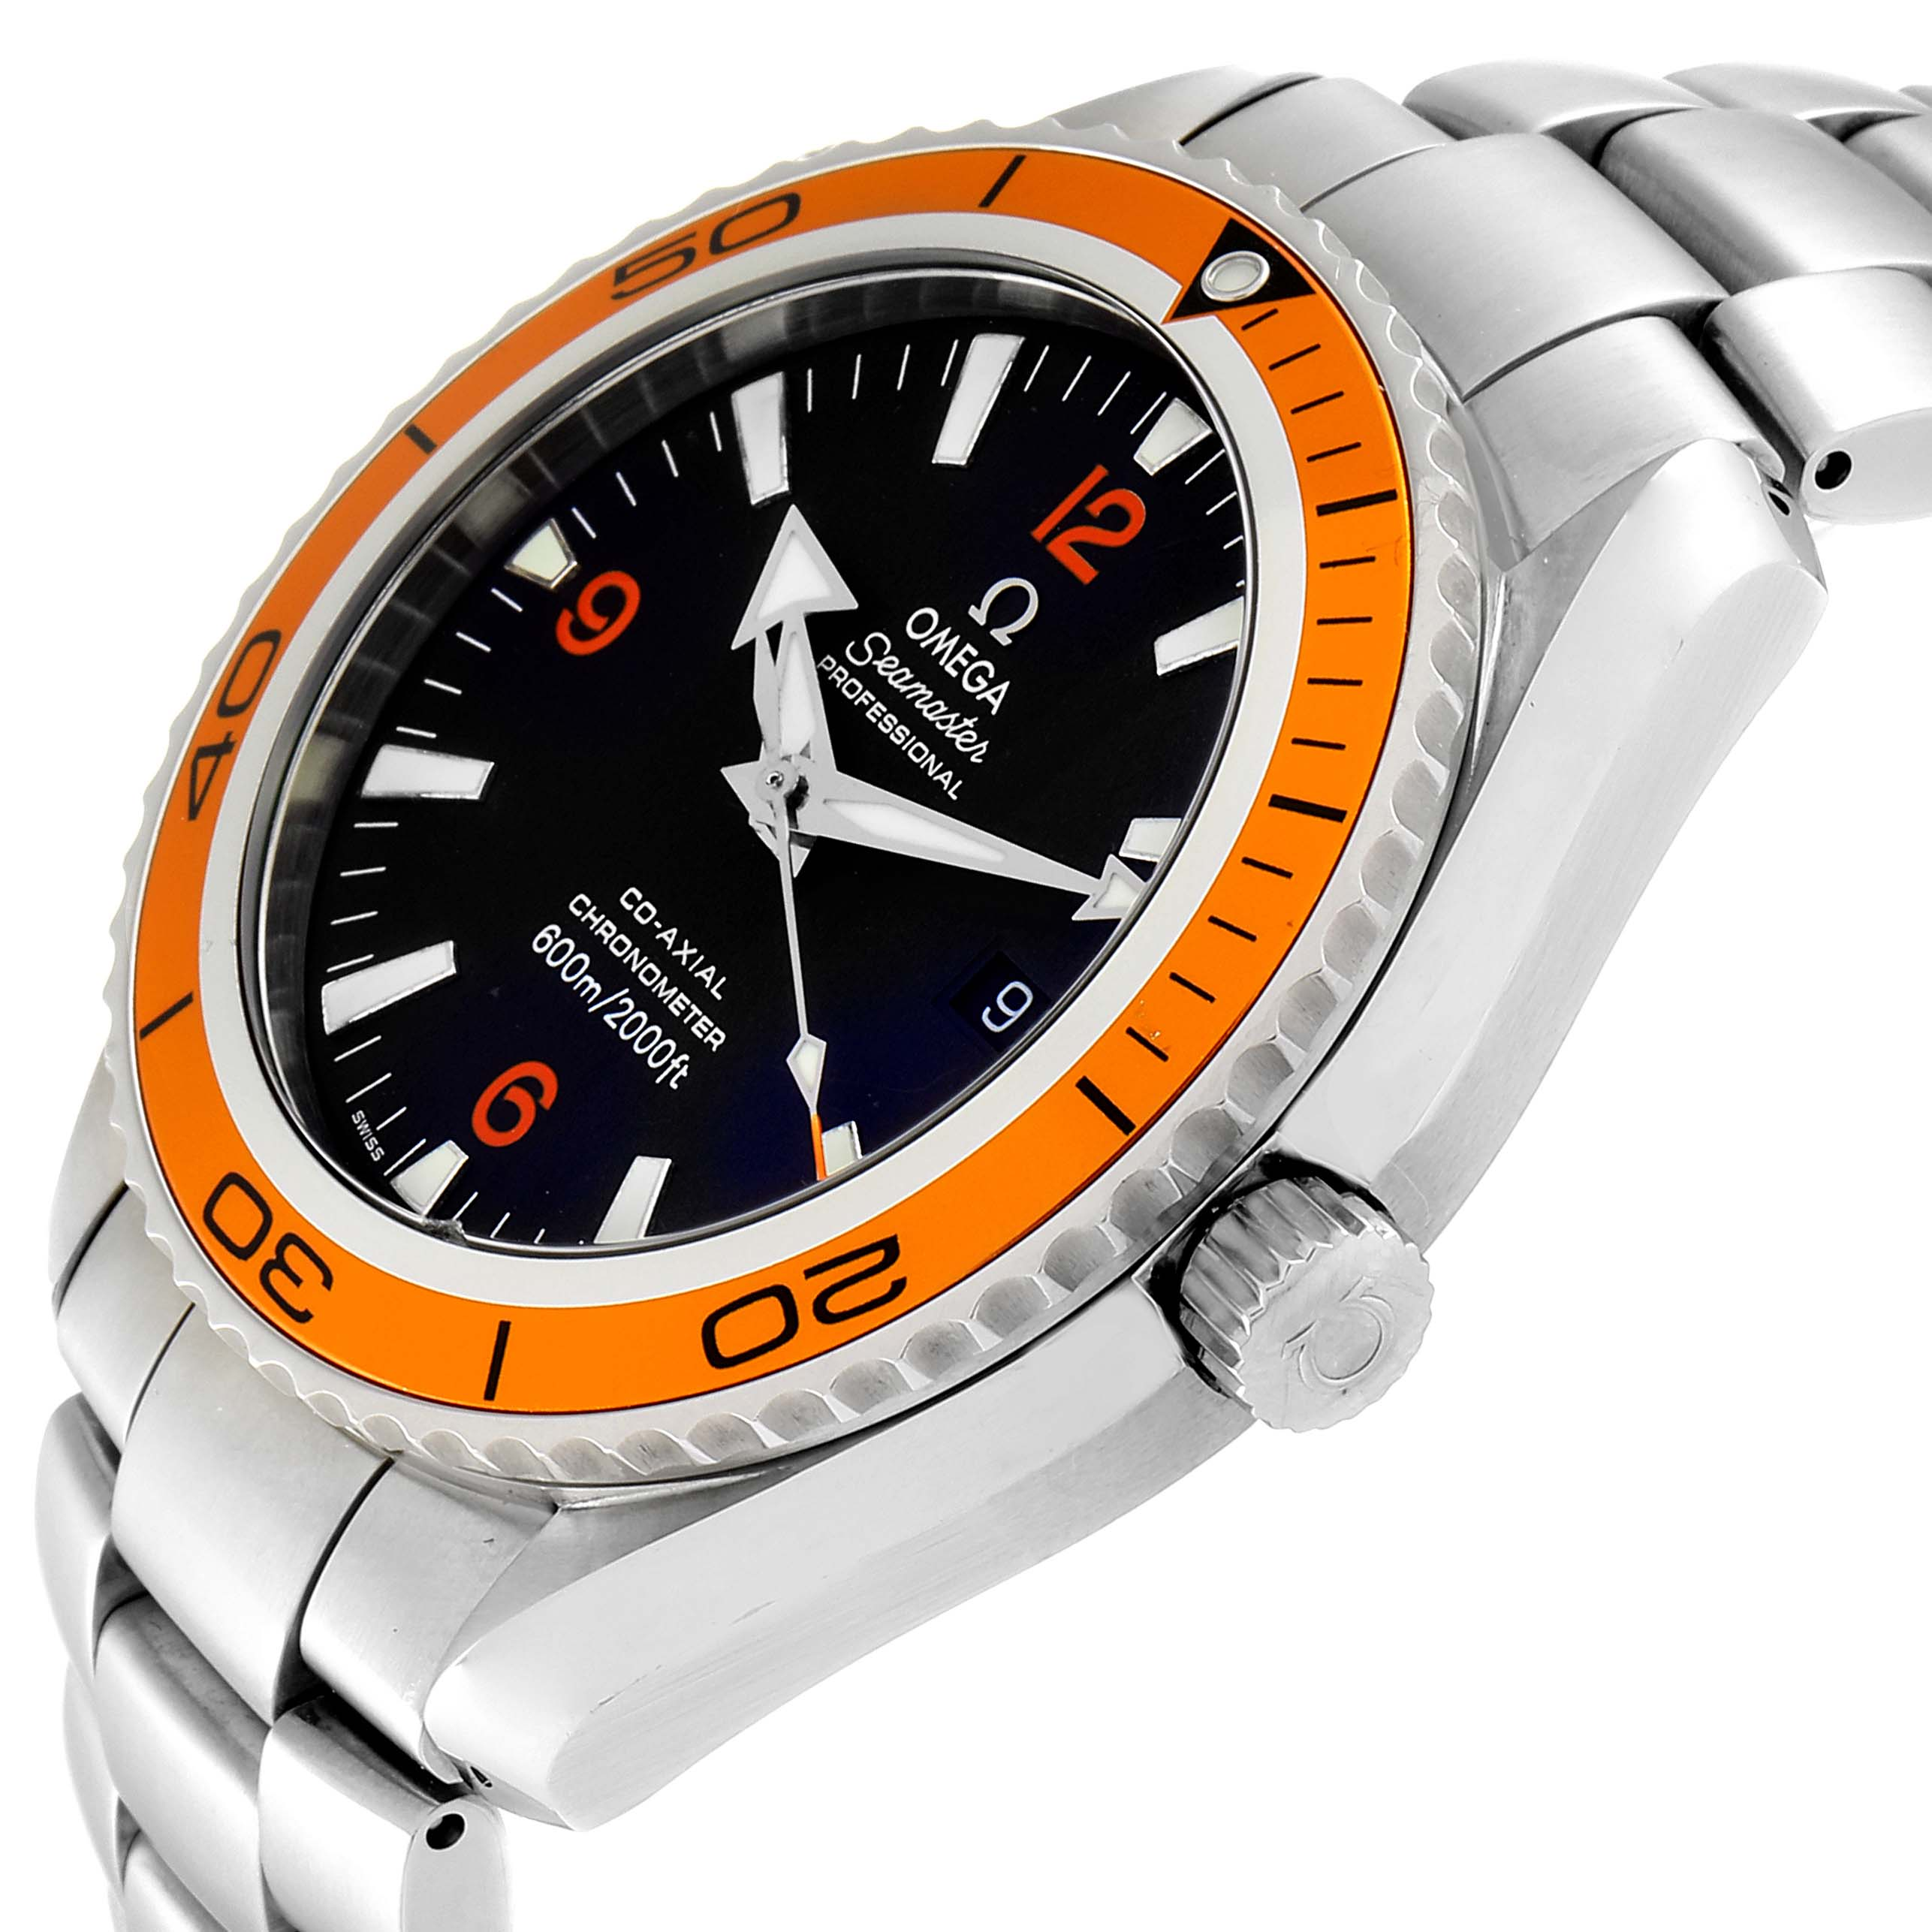 Omega Seamaster Planet Ocean 45 mm Mens Watch 232.30.46.21.01.002 SwissWatchExpo